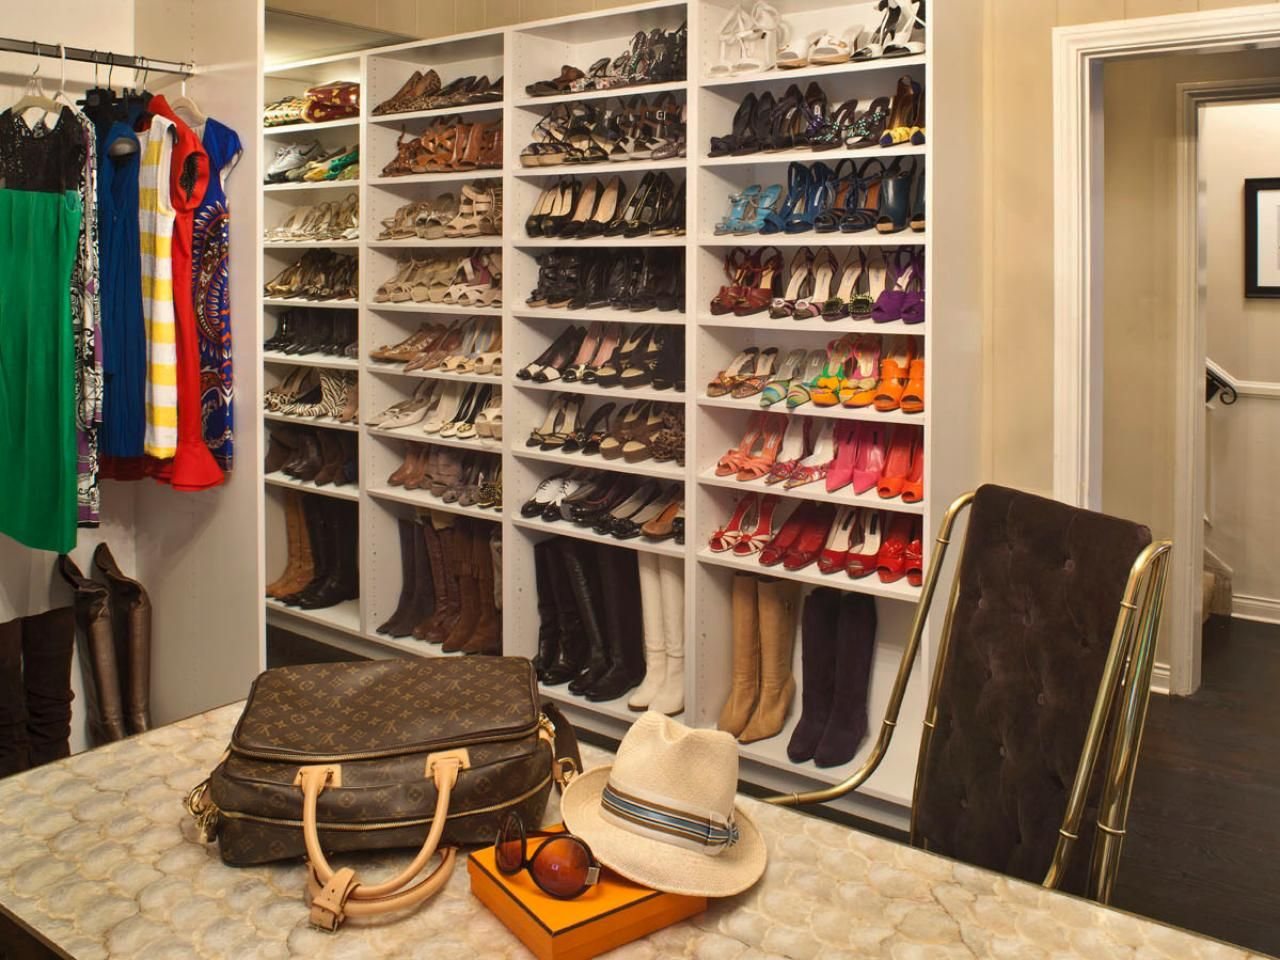 25 Ways to Store Shoes in Your